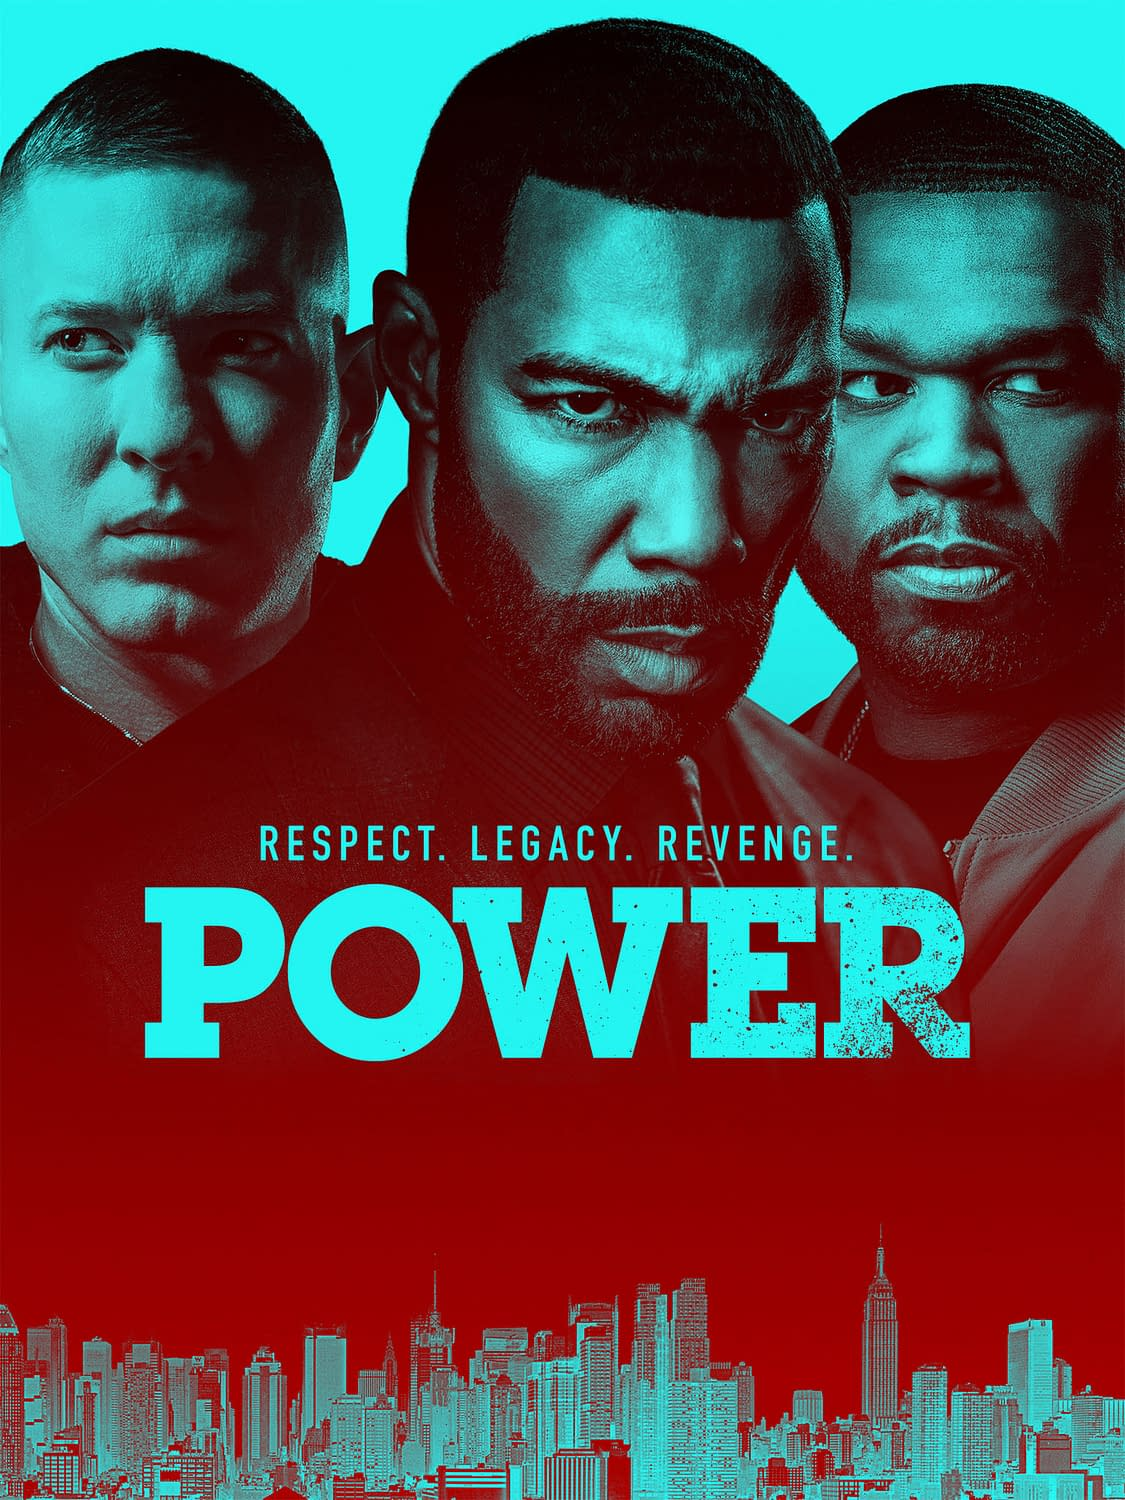 """Power"" Kicks off Final Season with Maddison Square Garden Blowout"